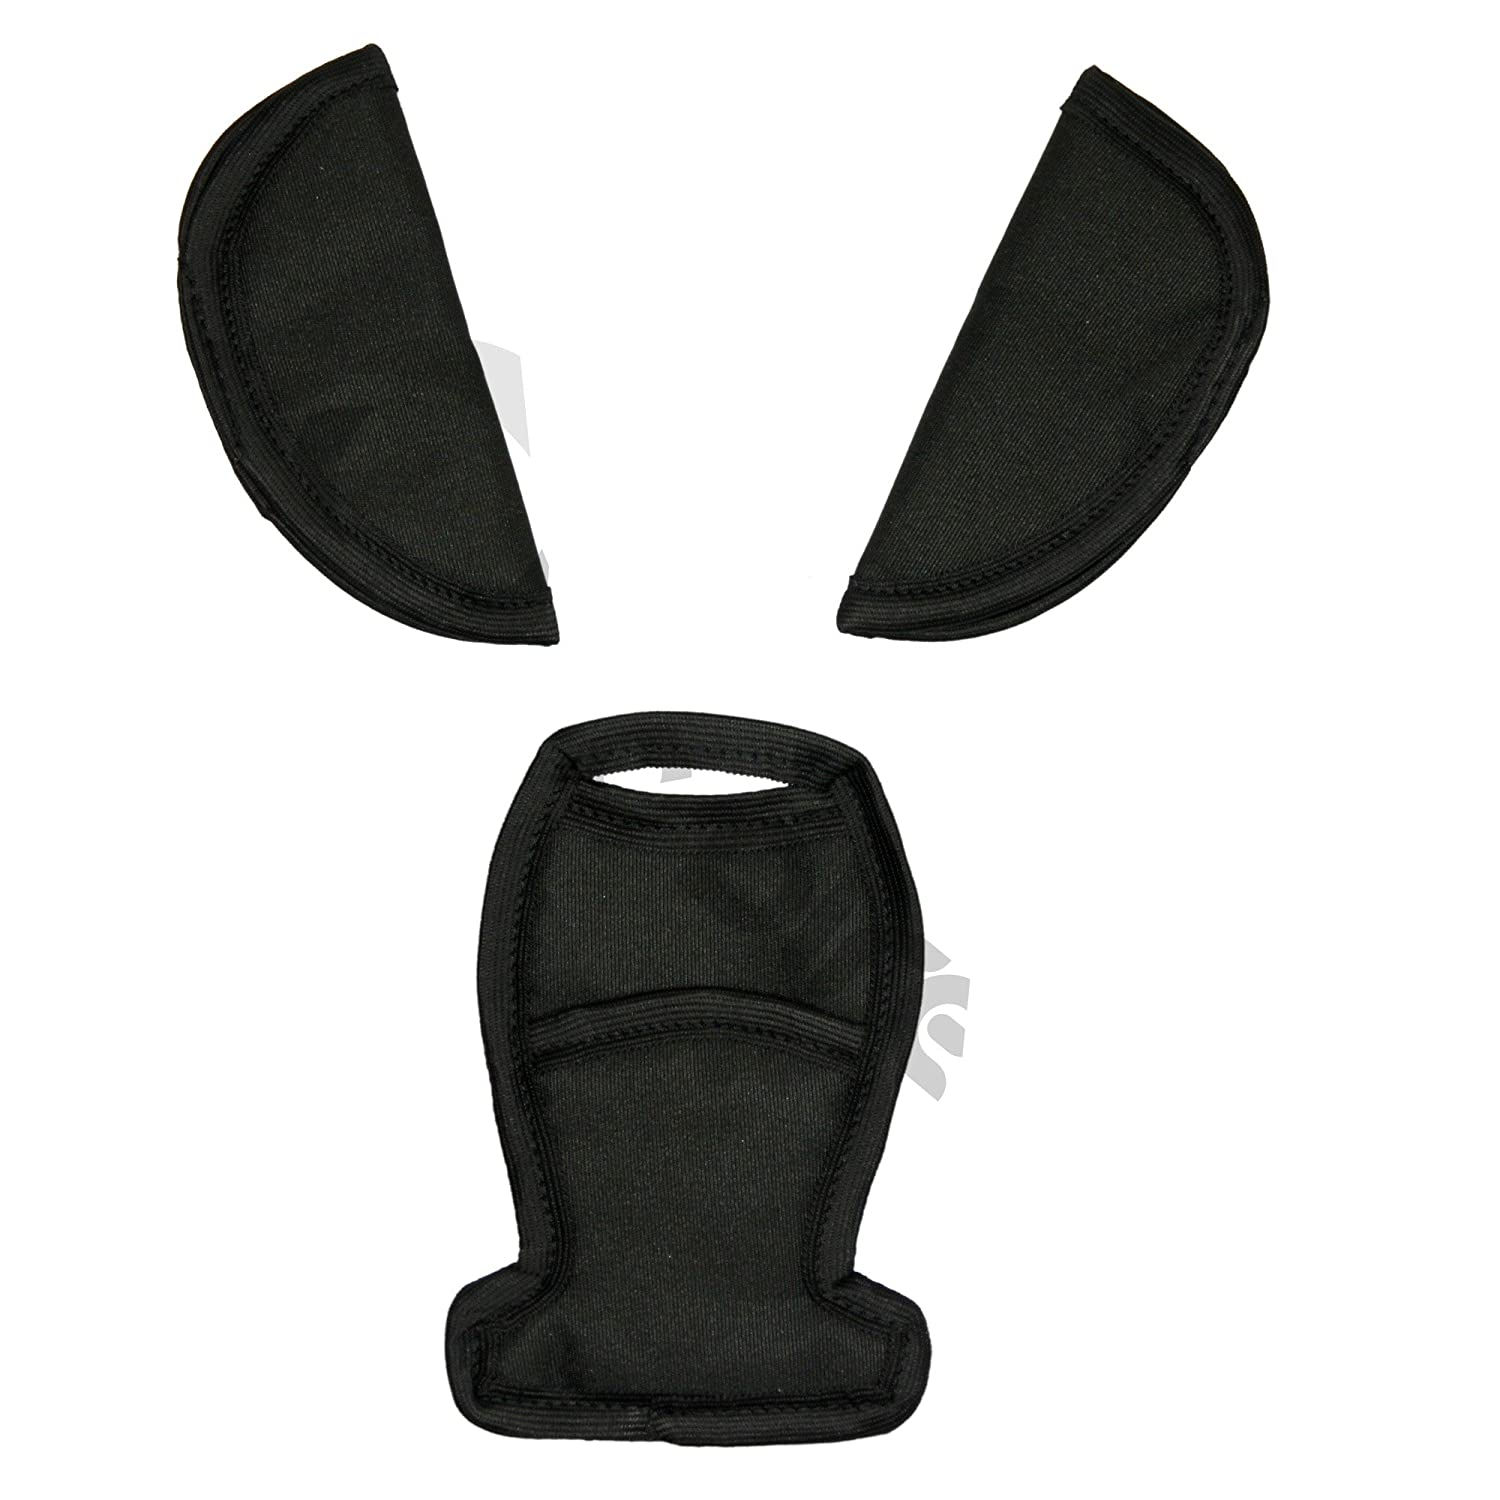 BELTS PADS SHOULDER STRAP AND CROTCH COVER